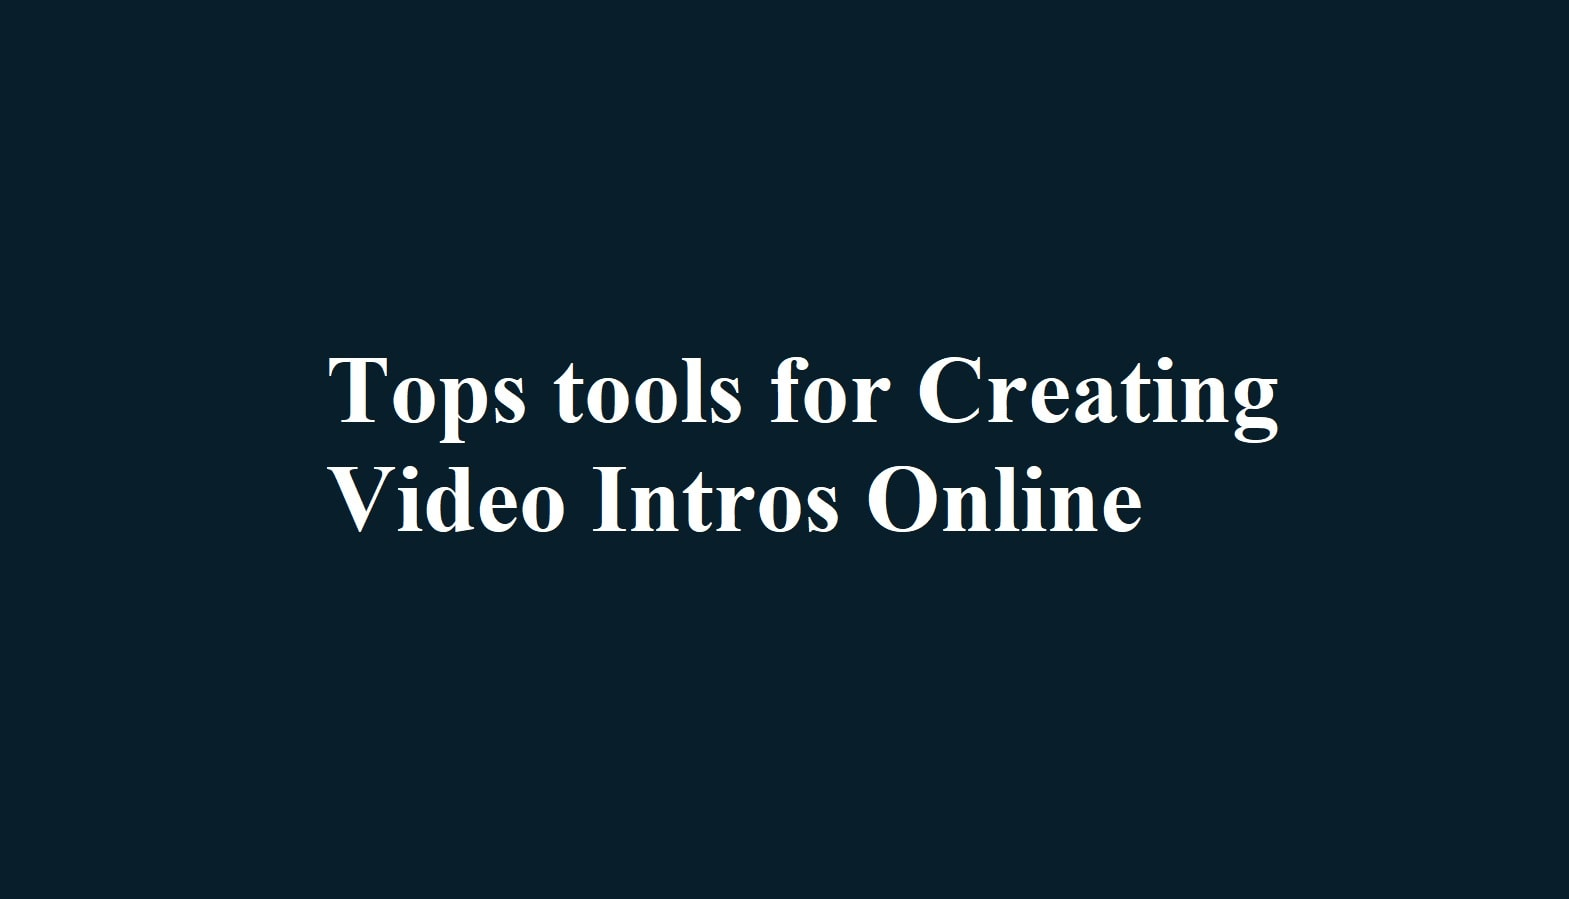 Tops tools for Creating Video Intros Online